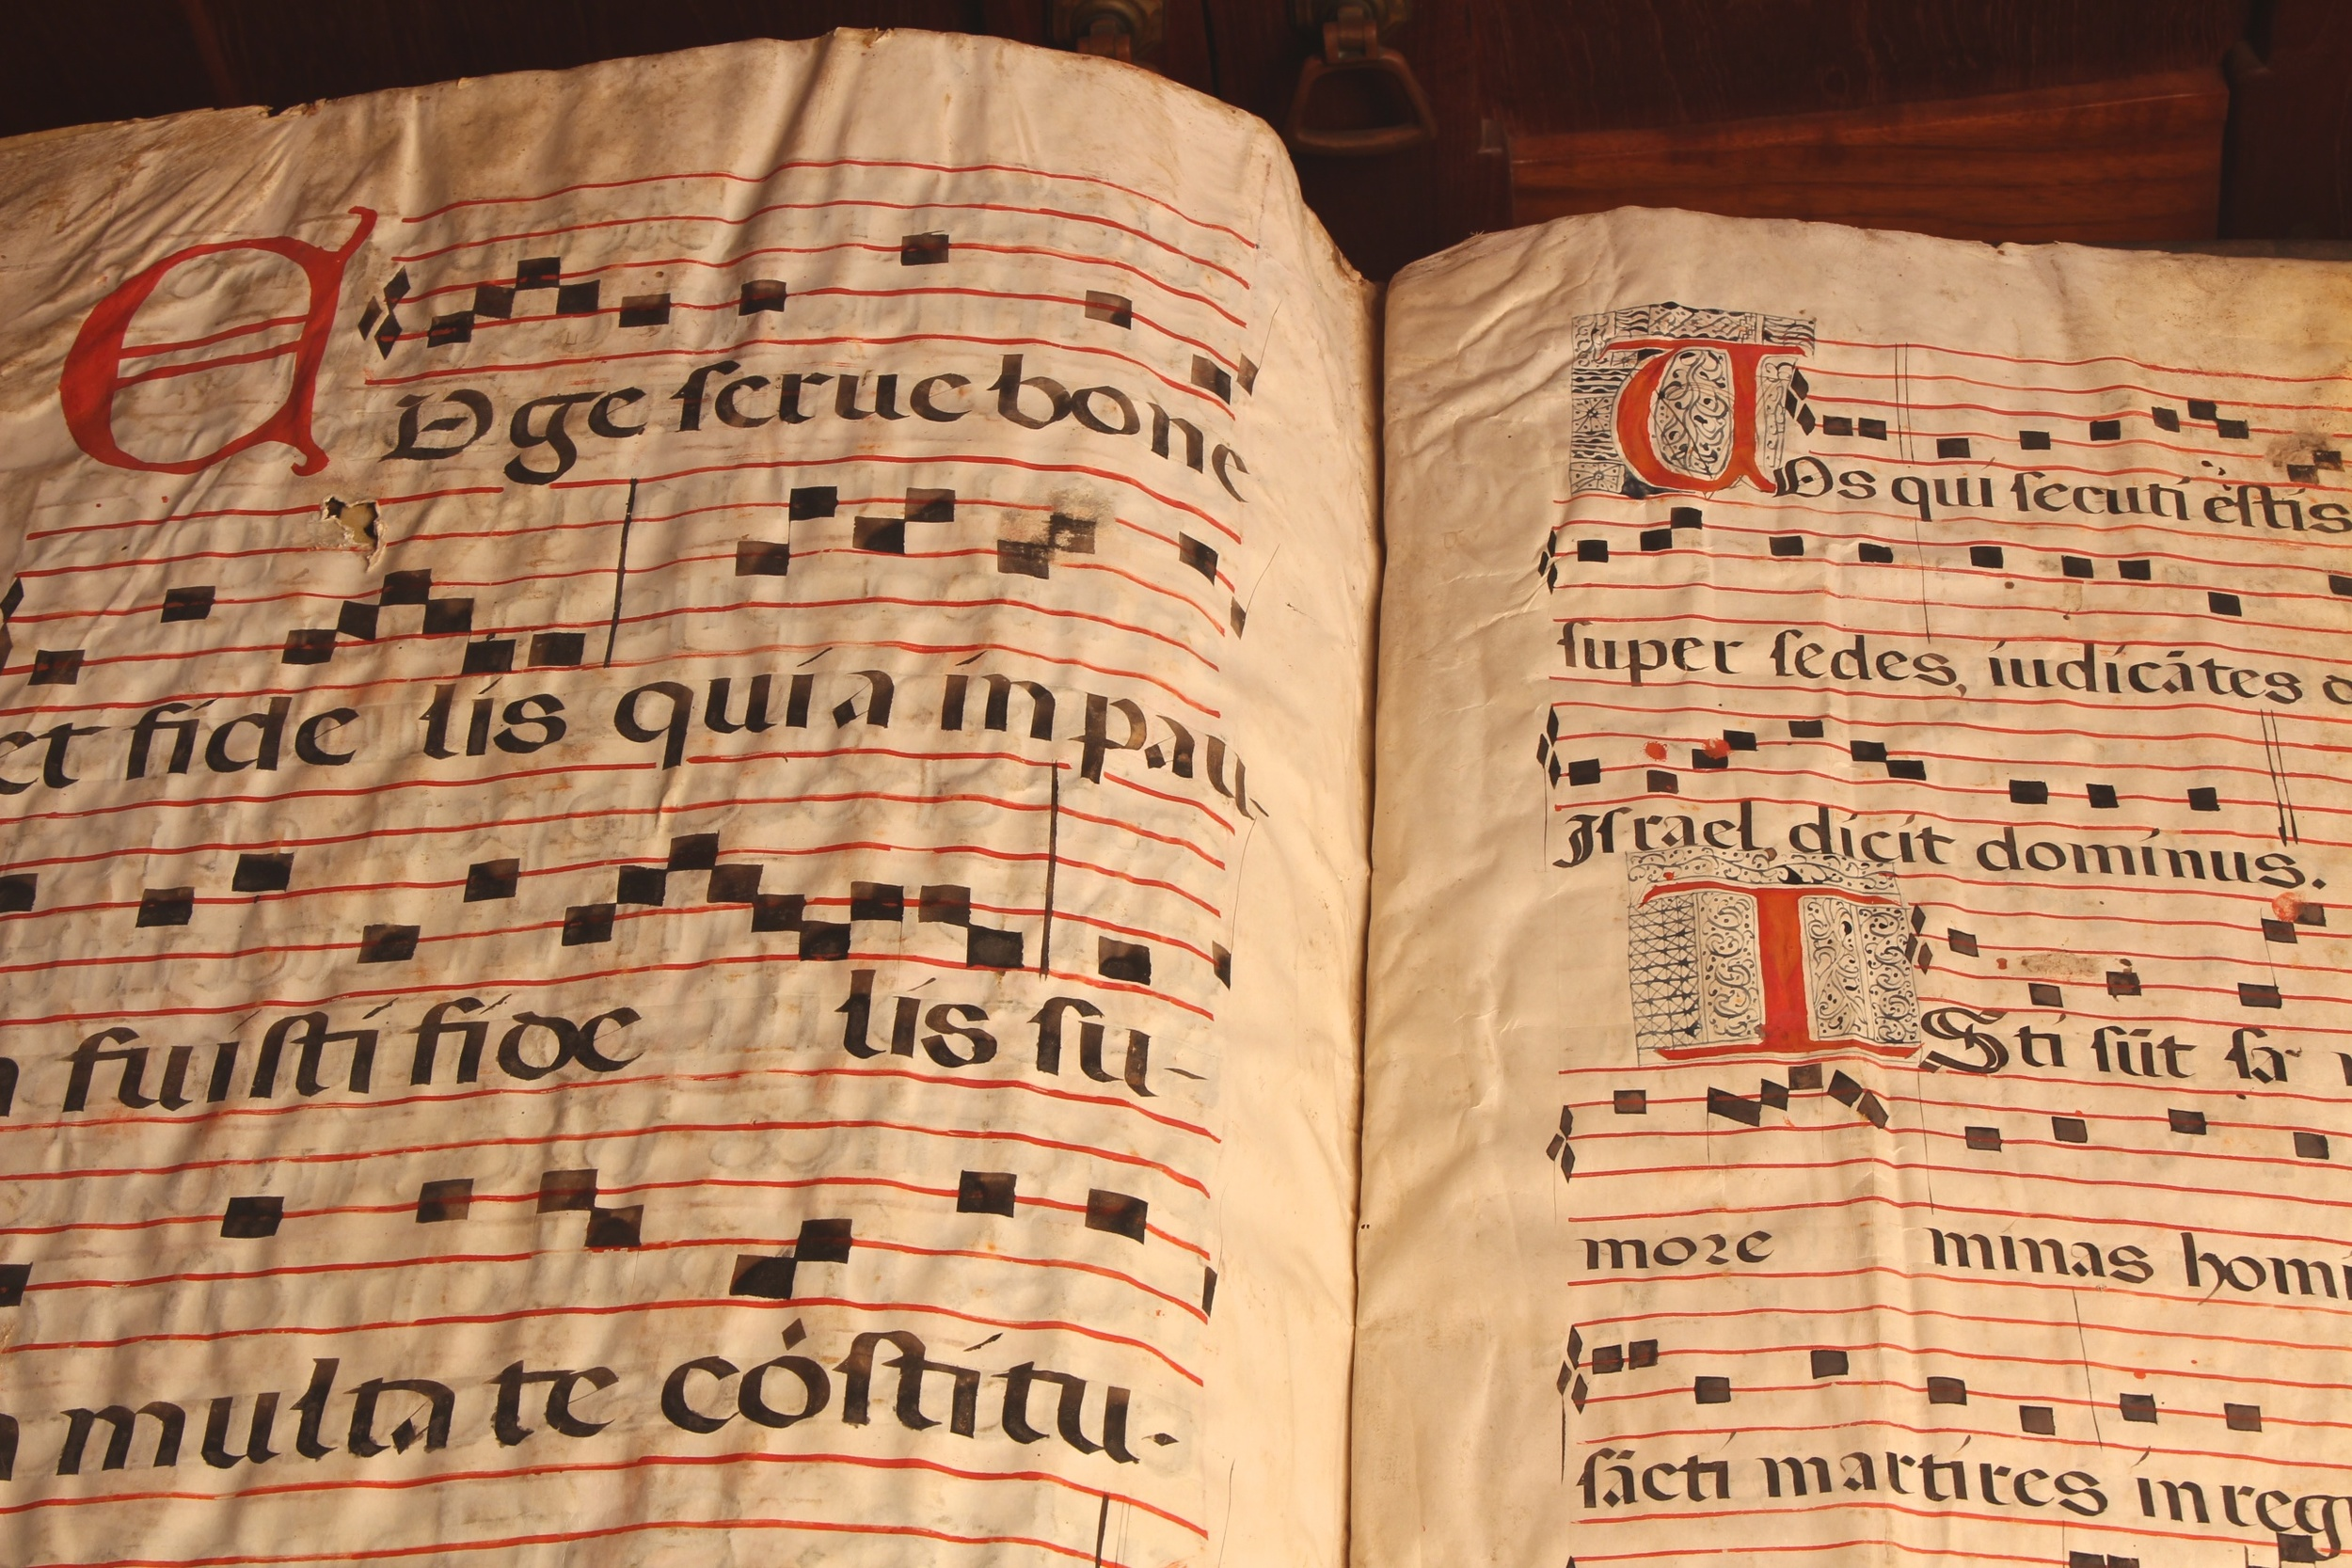 Figure 7: On the left is an example of a capital letter that was never illuminated, and on the right a more cramped copying job with a different style of illumination. This opening shows folios 156v-157 at the end of the book.